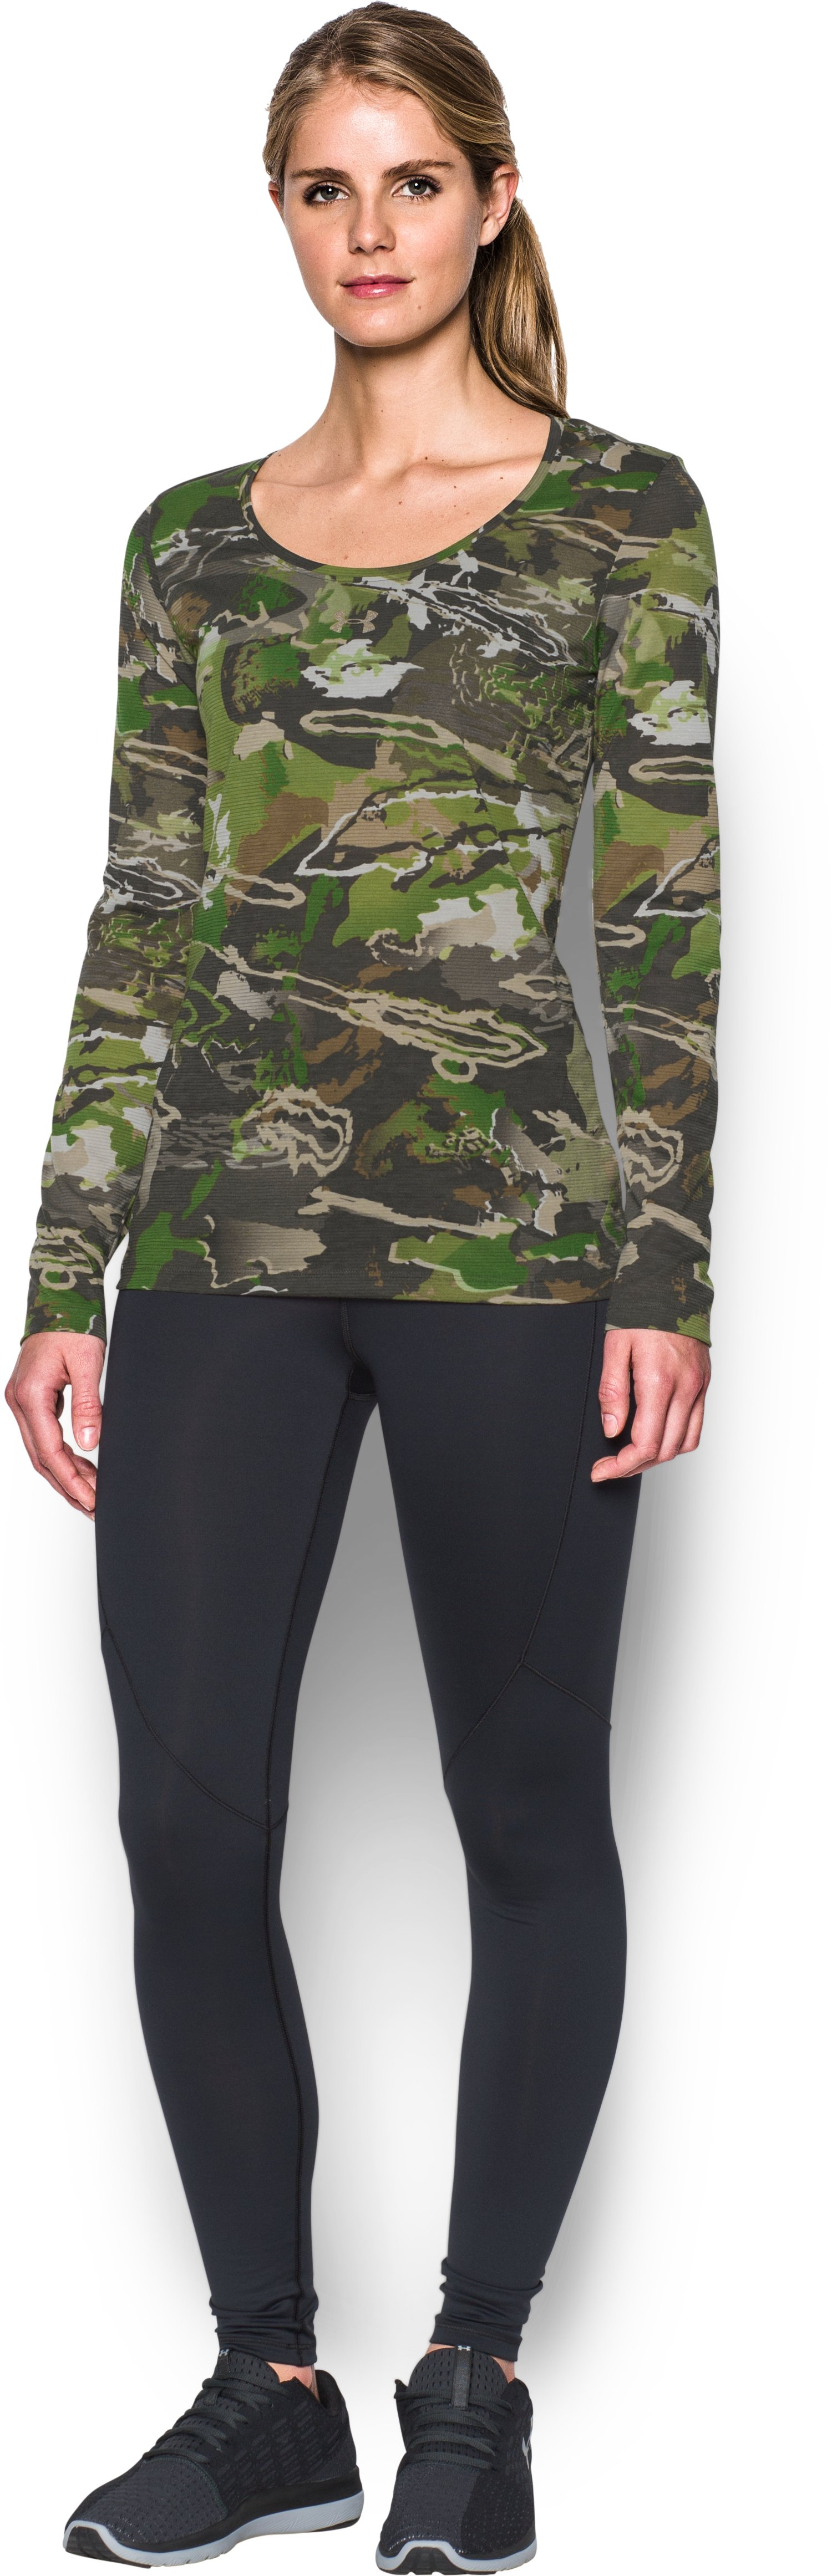 Women's UA Threadborne™ Early Season Long Sleeve, RIDGE REAPER® FOREST